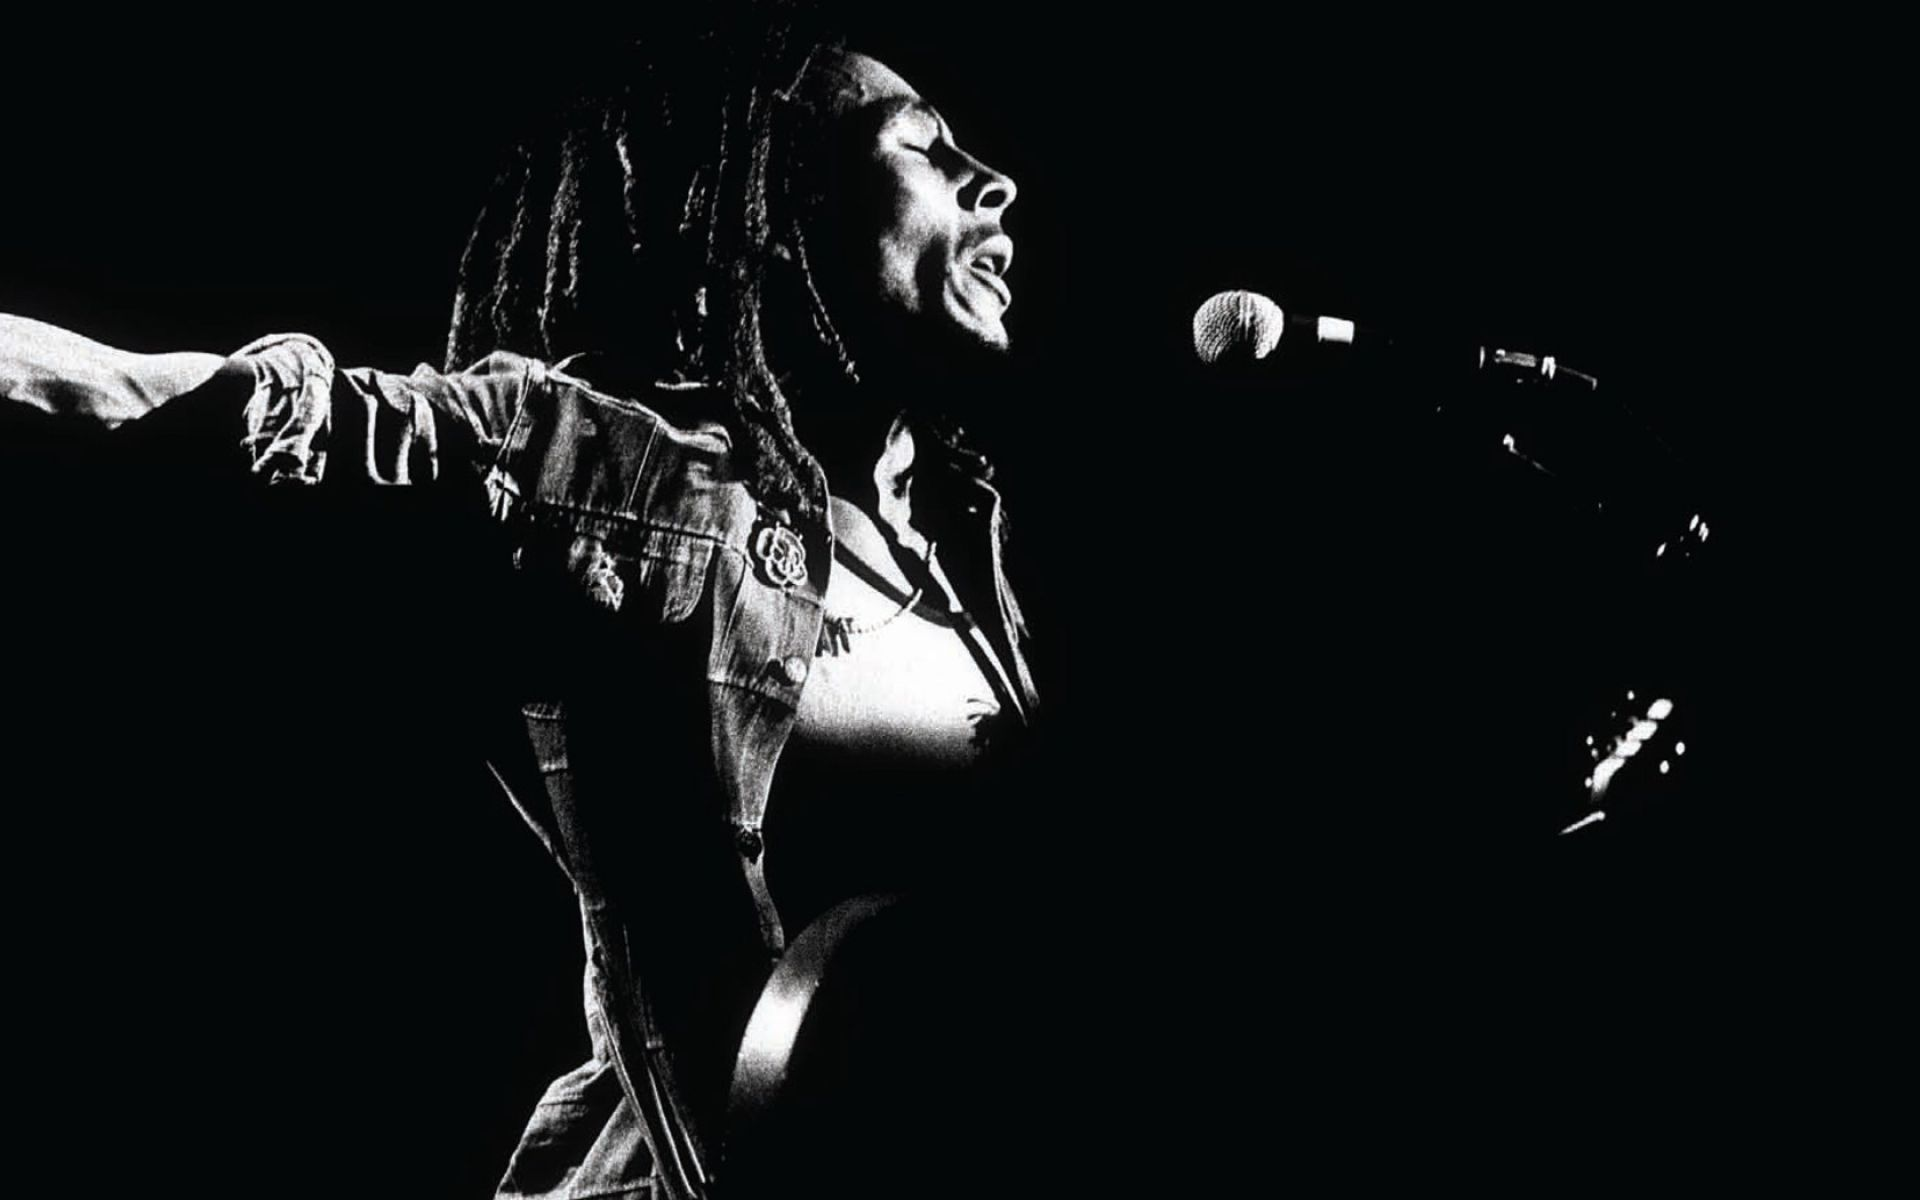 Bob-Marley-Live-Performs-Photo-Black-and-White-HD-xpx-Desktop-Free-wallpaper-wp4405249